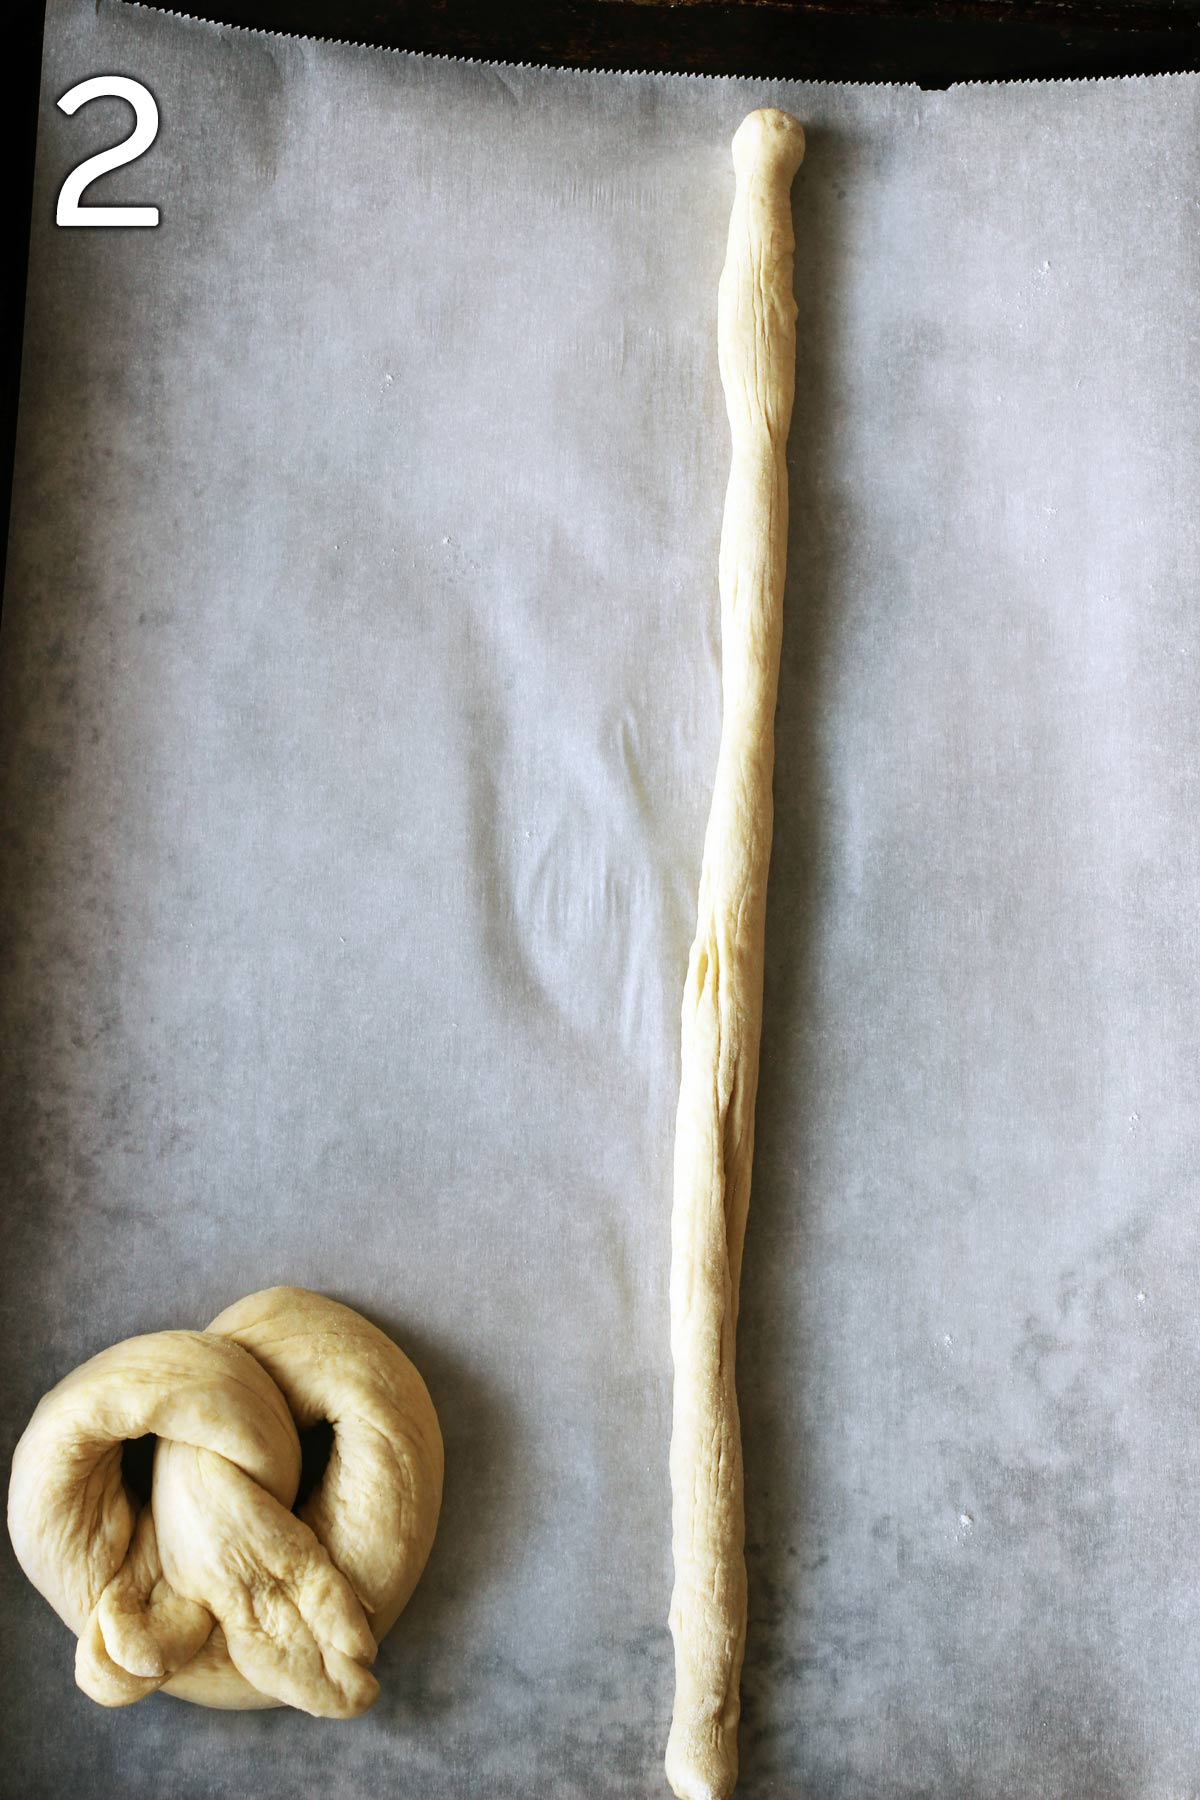 formed pretzel on tray next to long dough snake.